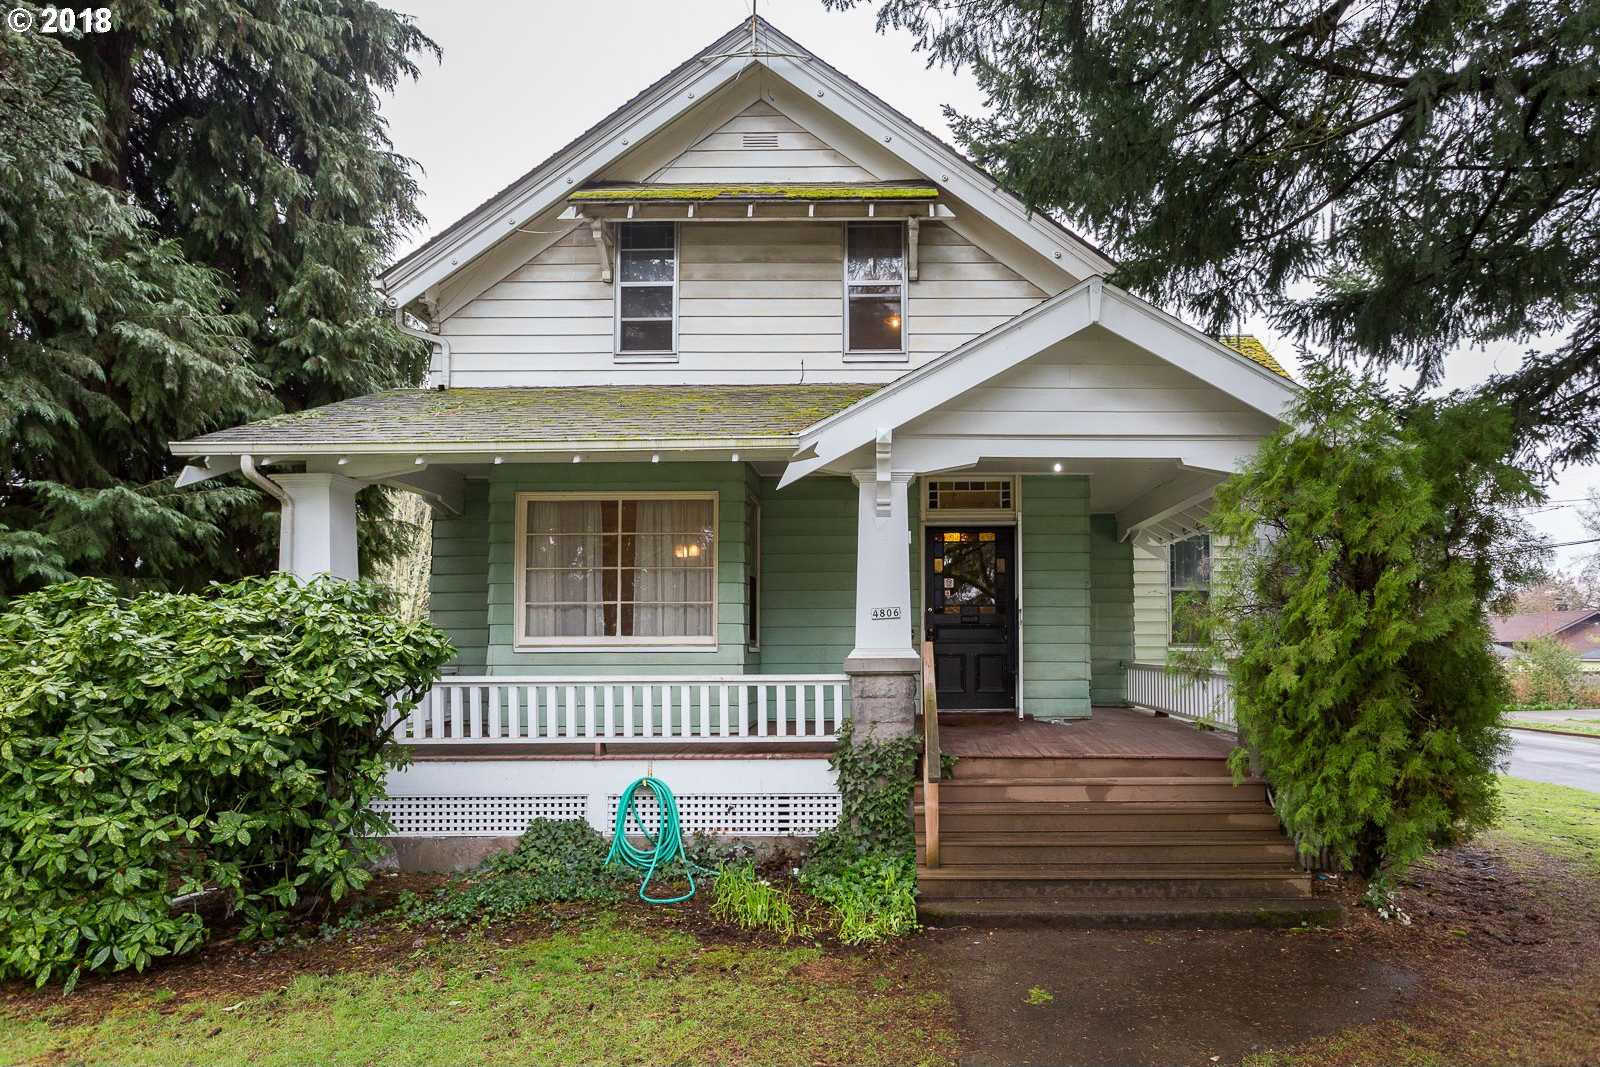 $550,000 - 5Br/2Ba -  for Sale in Woodstock, Portland